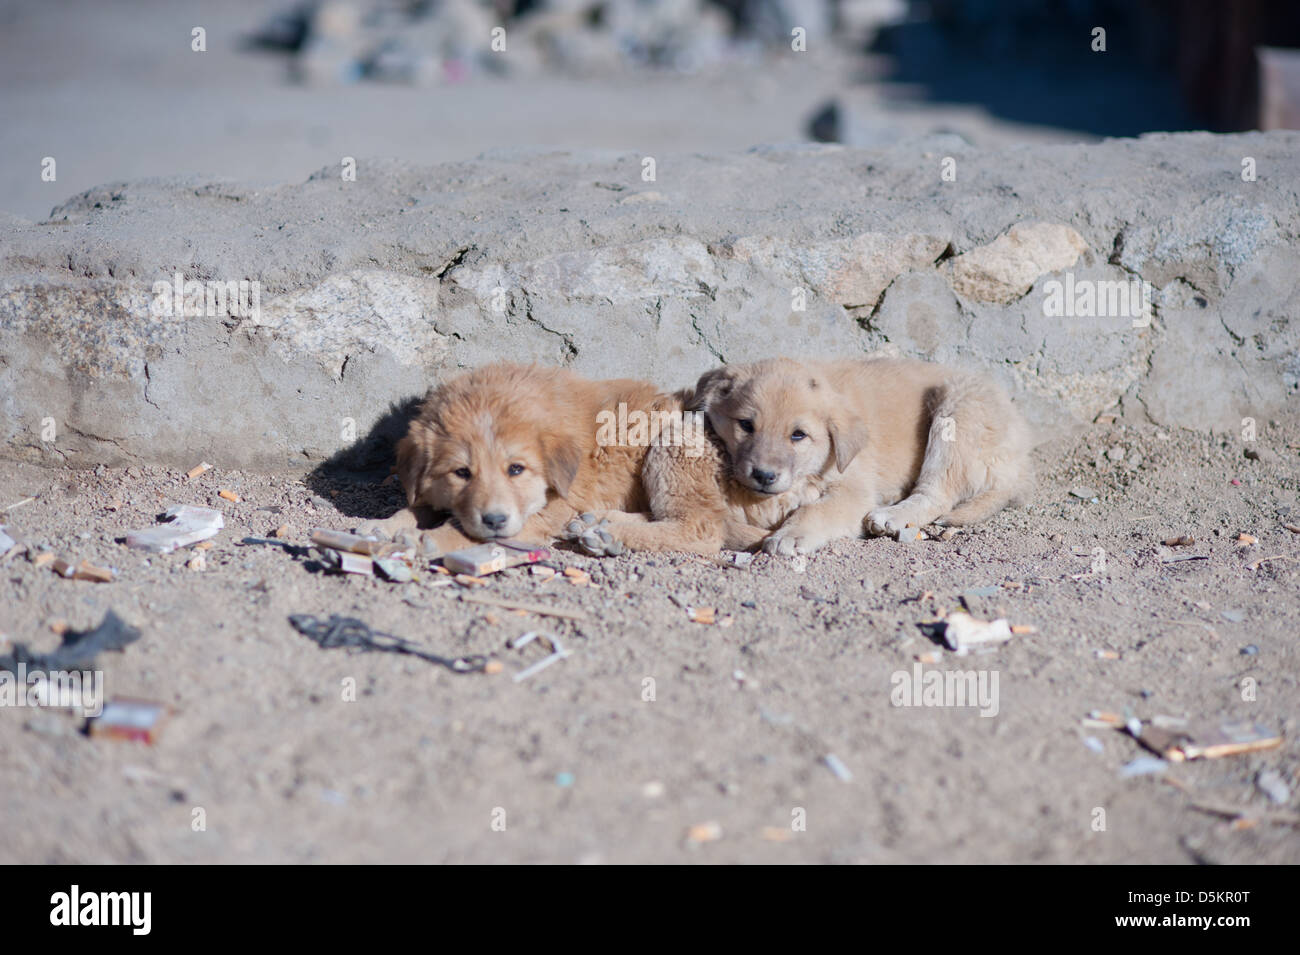 Cute, homeless, puppies in the mountain town of Leh, Ladakh, Jammu and Kashmir. India. - Stock Image